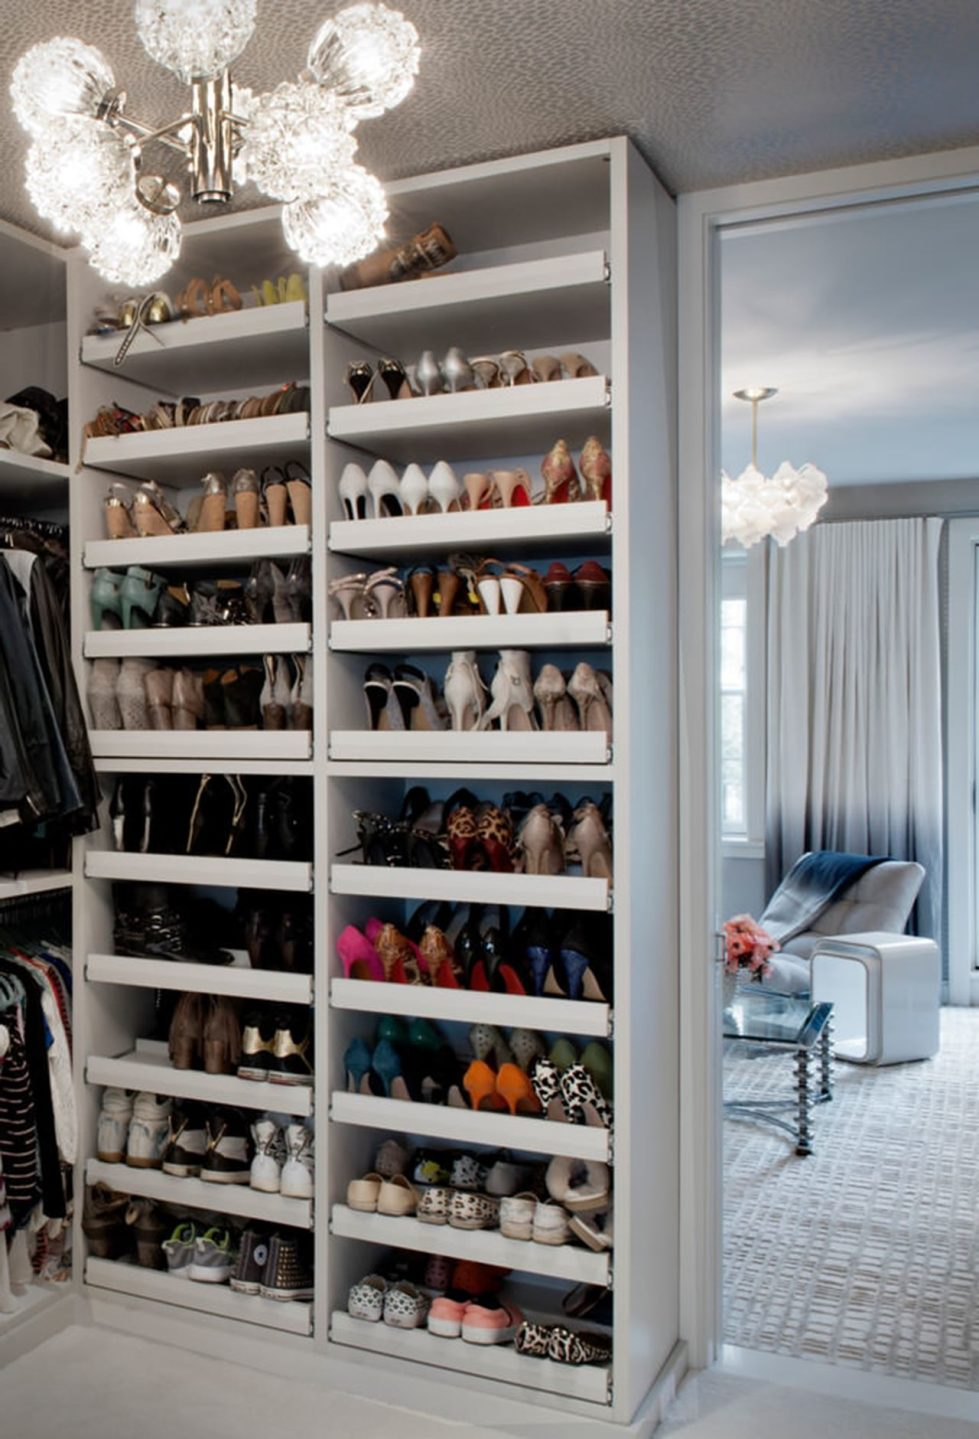 New York townhouse in a mixed style - Every woman will envy such a spacious dressing room